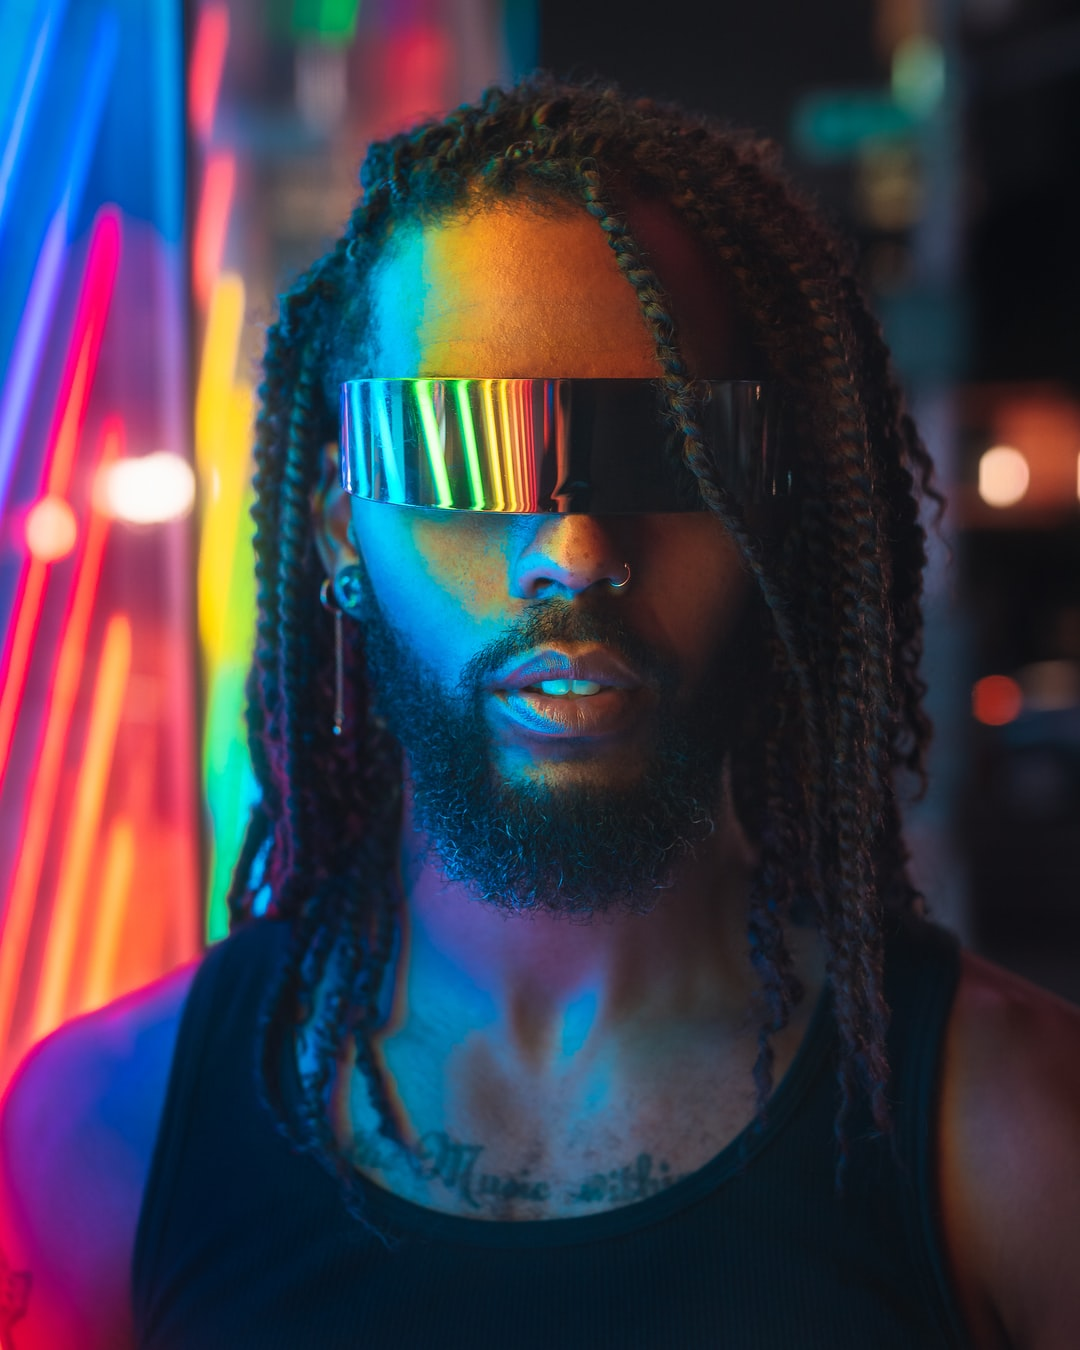 An image of a dark-skinned, dreadlocked man with a mirrored visor standing before a colorful wall of blurred neon light.